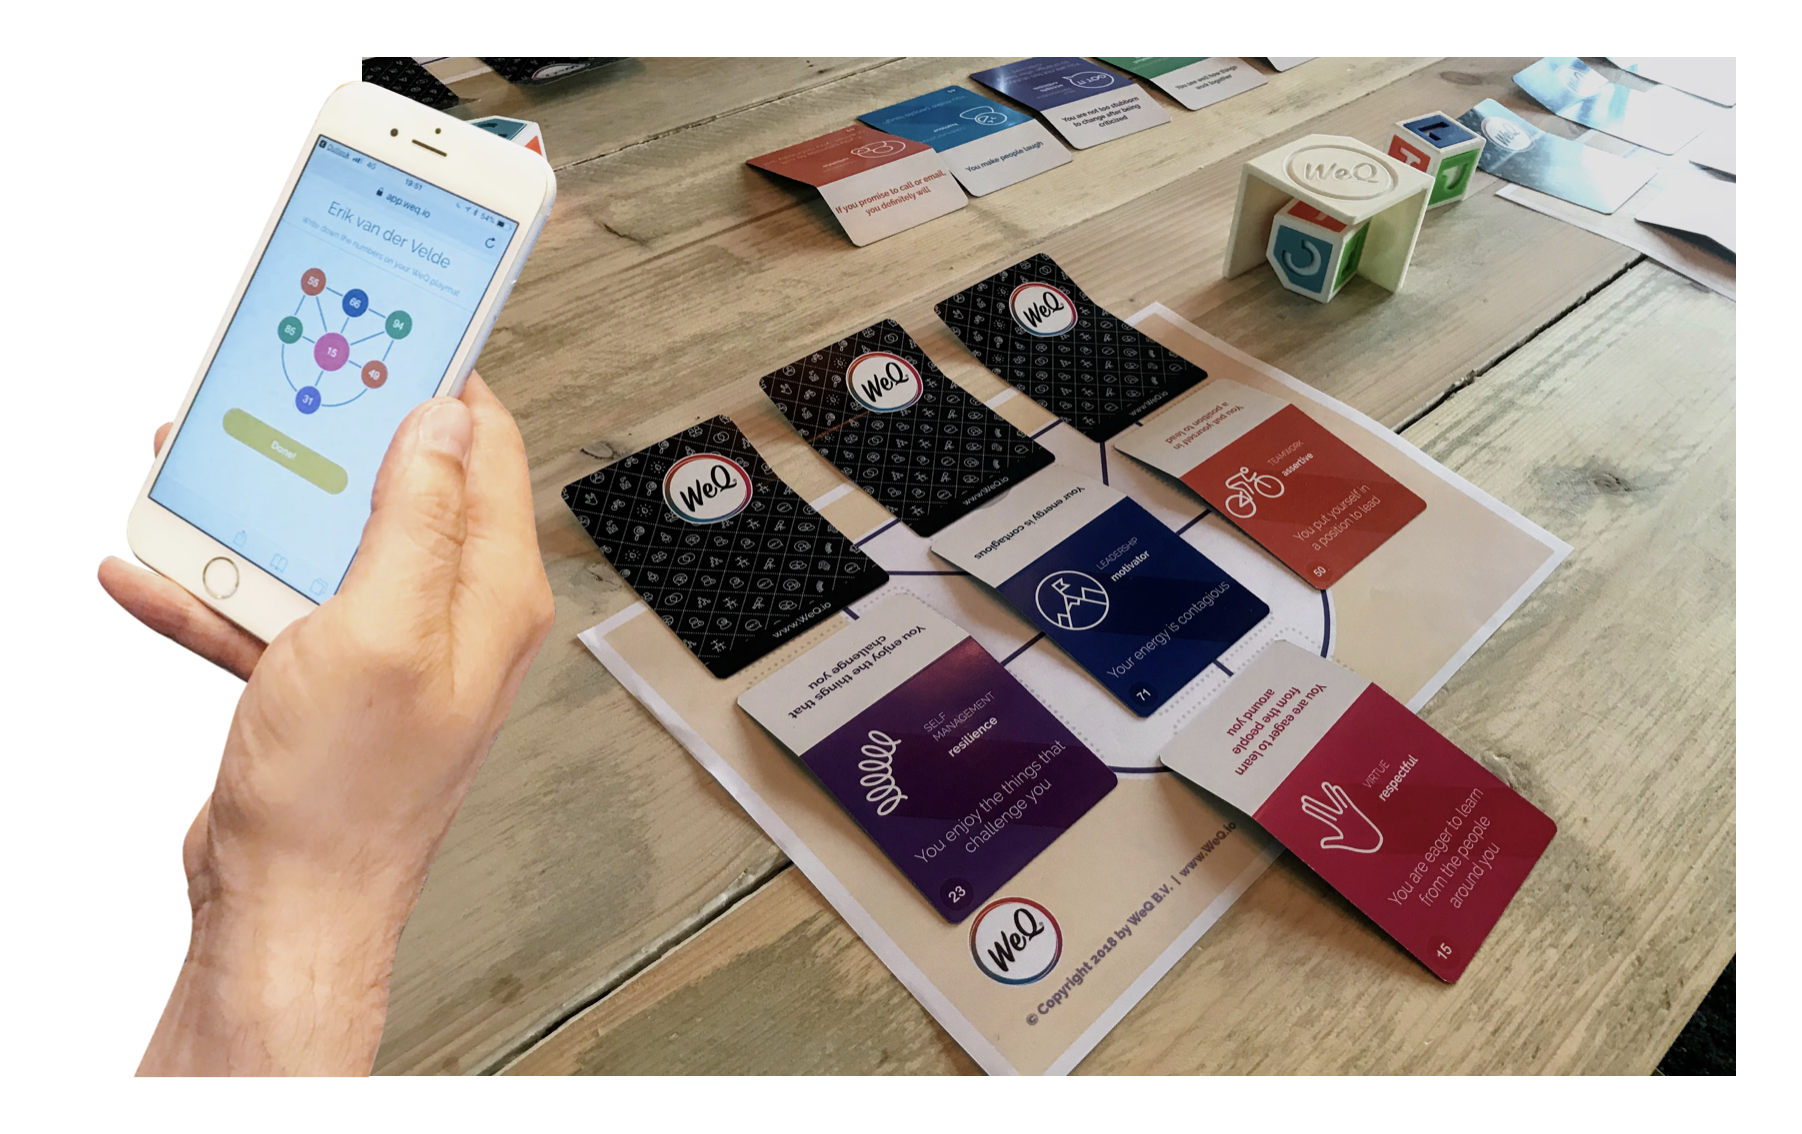 WeQ session, personalization of cards